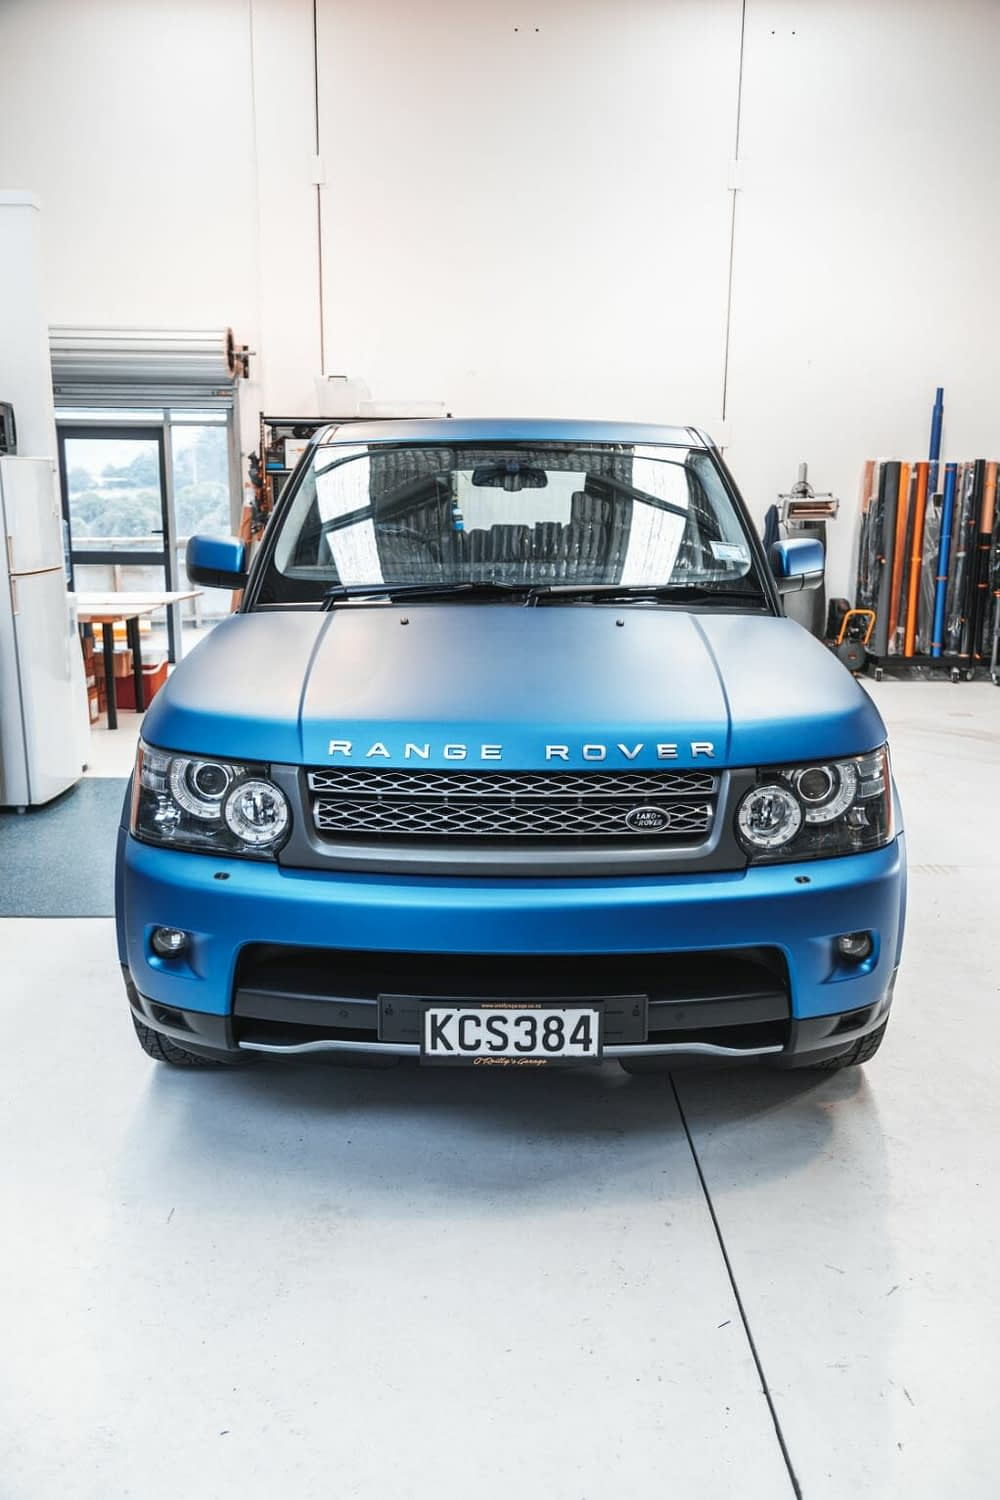 Wrap Innovations Gallery Range Rover 1 - Wrap Innovations - Car Wrap, Blackout, Window Tinting Specialist Wellington